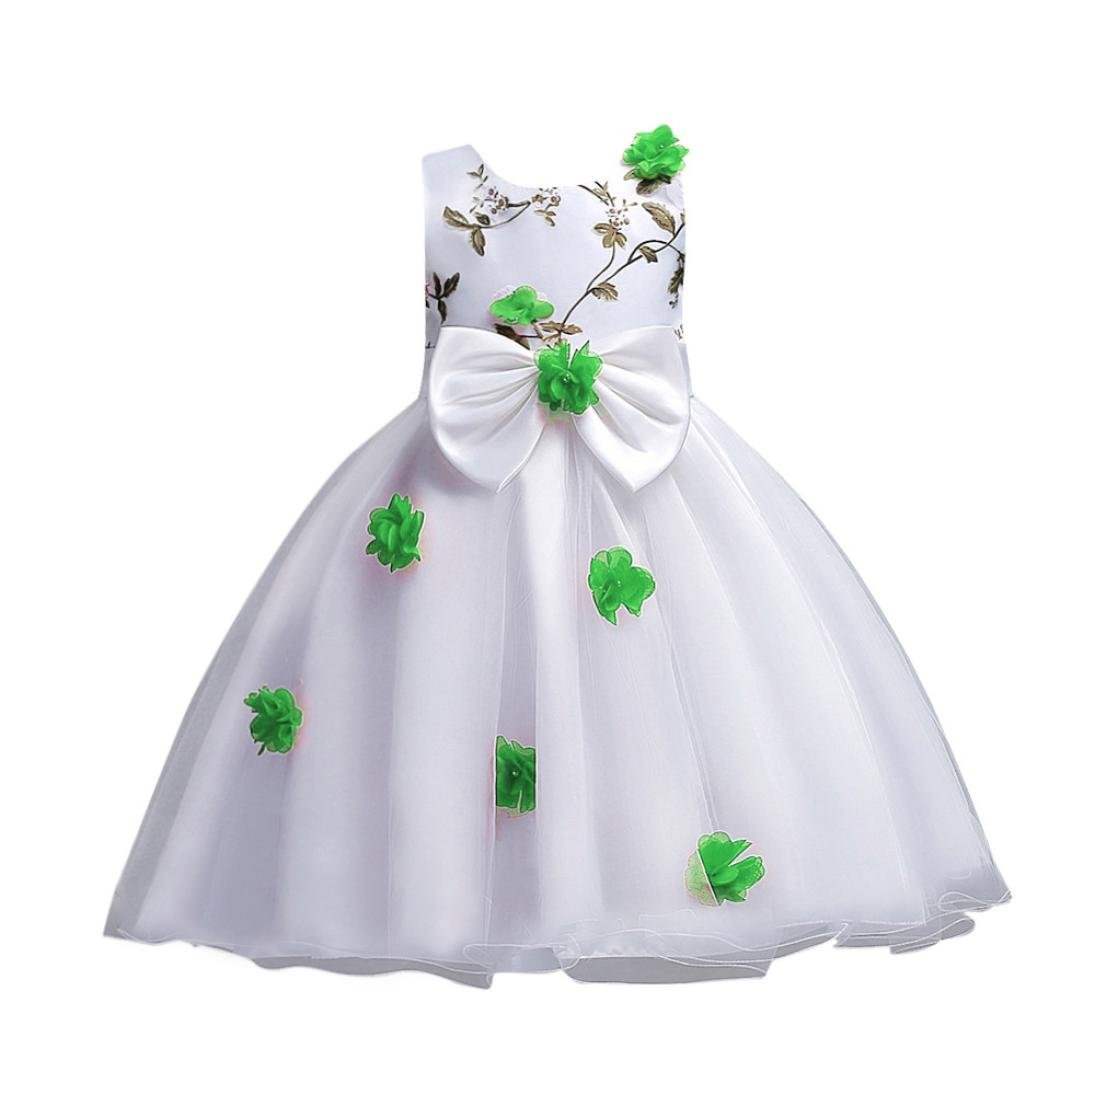 Green, 120 Toddler Baby Girls Sleeveless Floral Bowknot Tutu Princess Dress Outfits Clothes